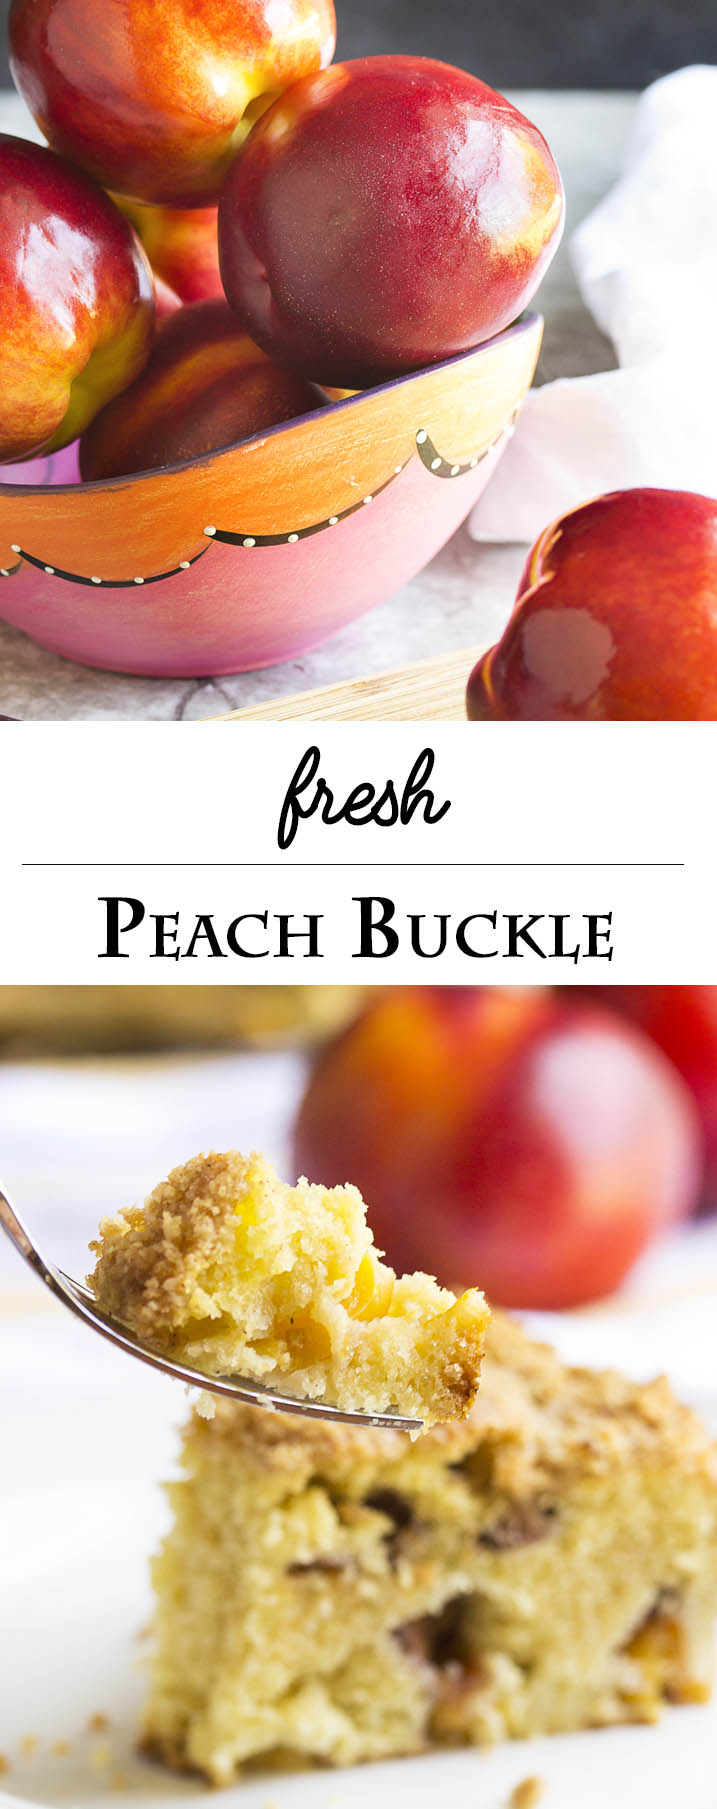 Fresh Peach Buckle Cake - This fresh peach buckle is a wonderful, homey fruit dessert which is tender and moist and packed full of peaches. Great for dessert, for breakfast, or for a mid-day snack. | justalittlebitofbacon.com